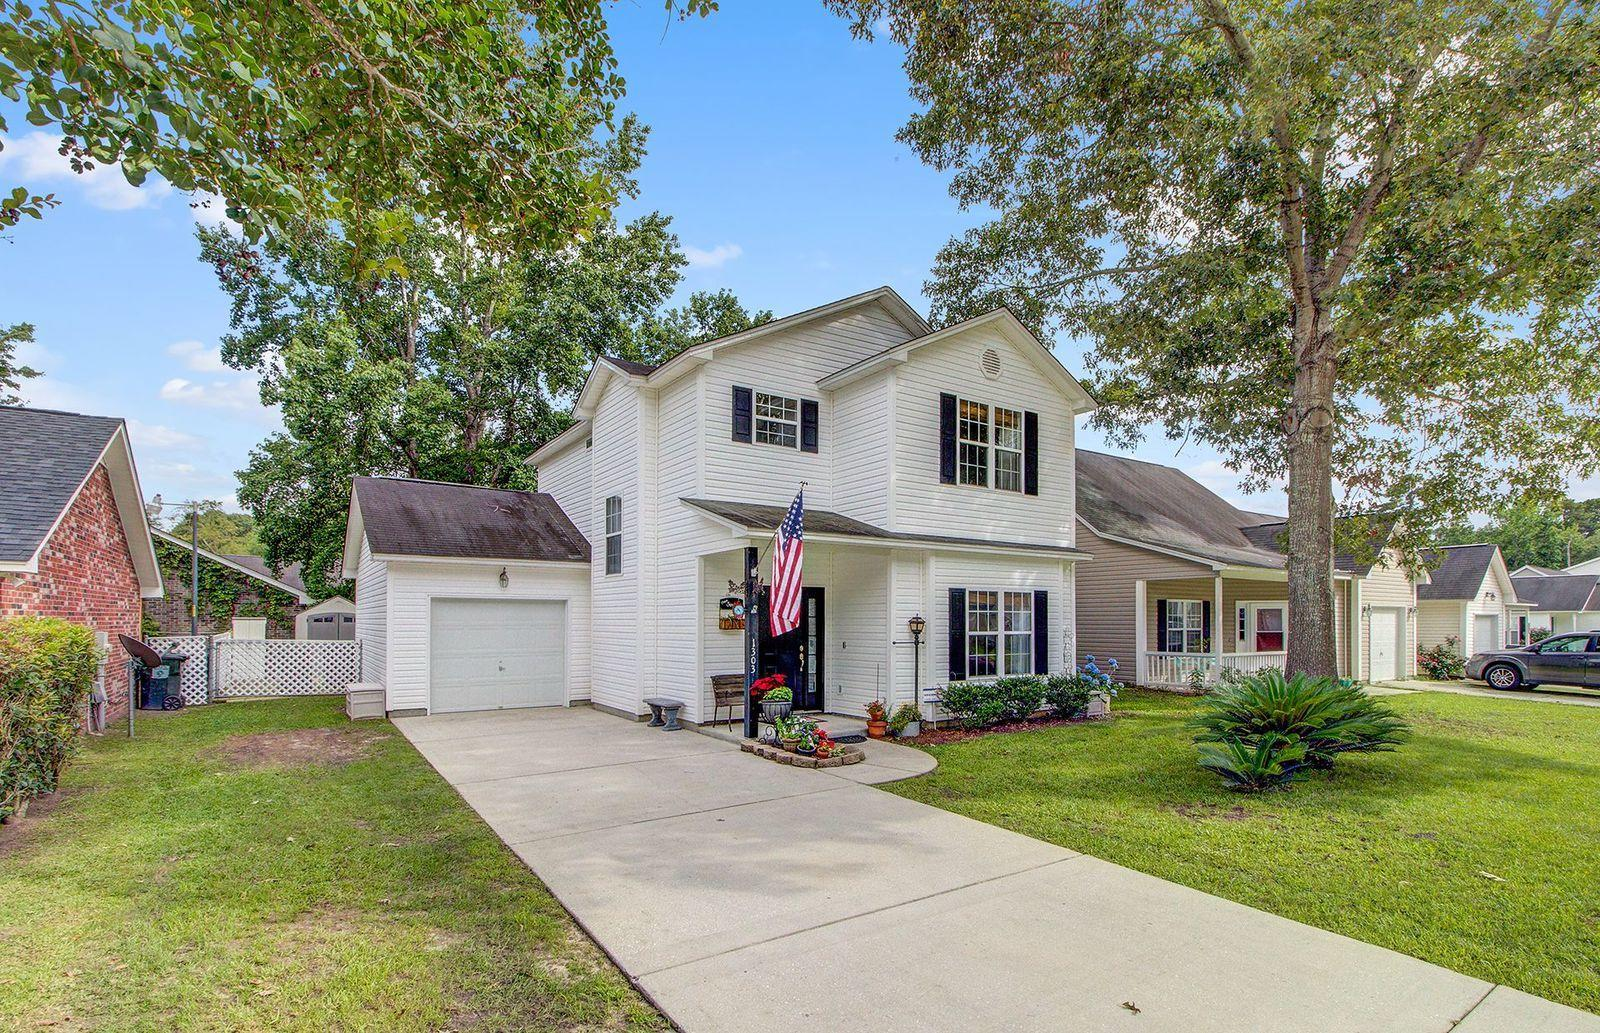 1303 Pinethicket Drive Summerville, SC 29483